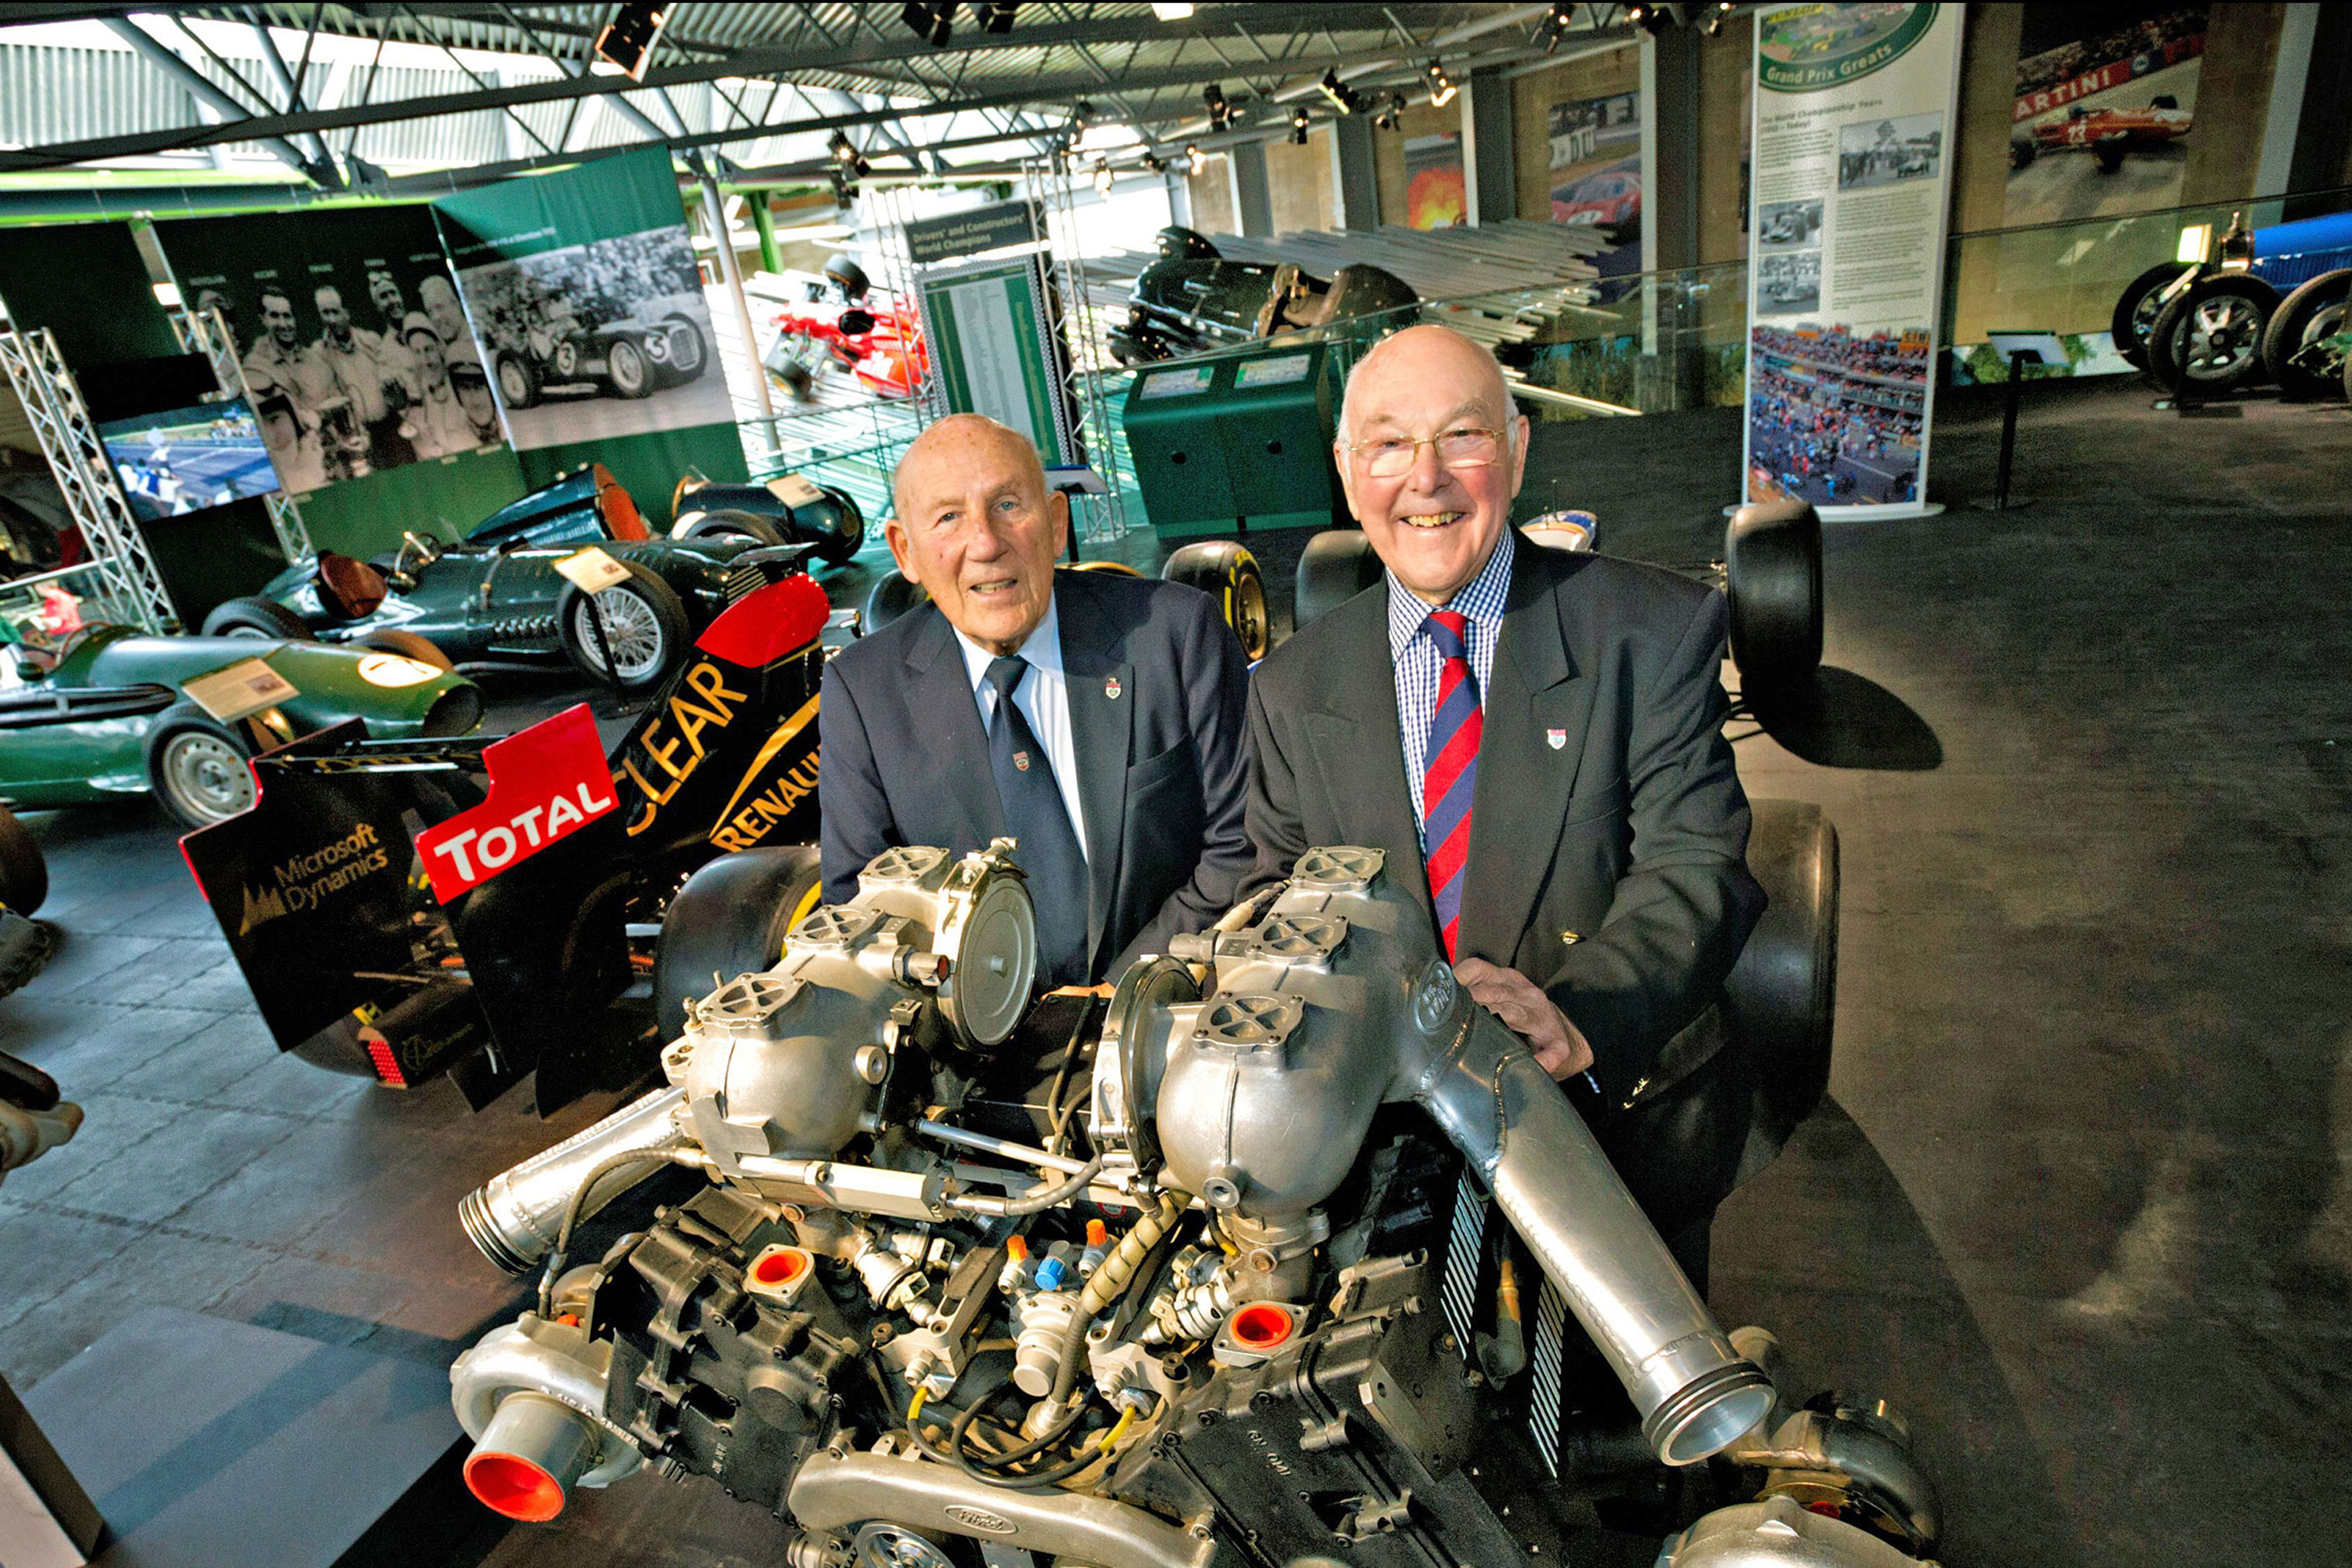 Murray Walker and Stirling Moss at the opening of a Chequered History display at the National Motor Museum